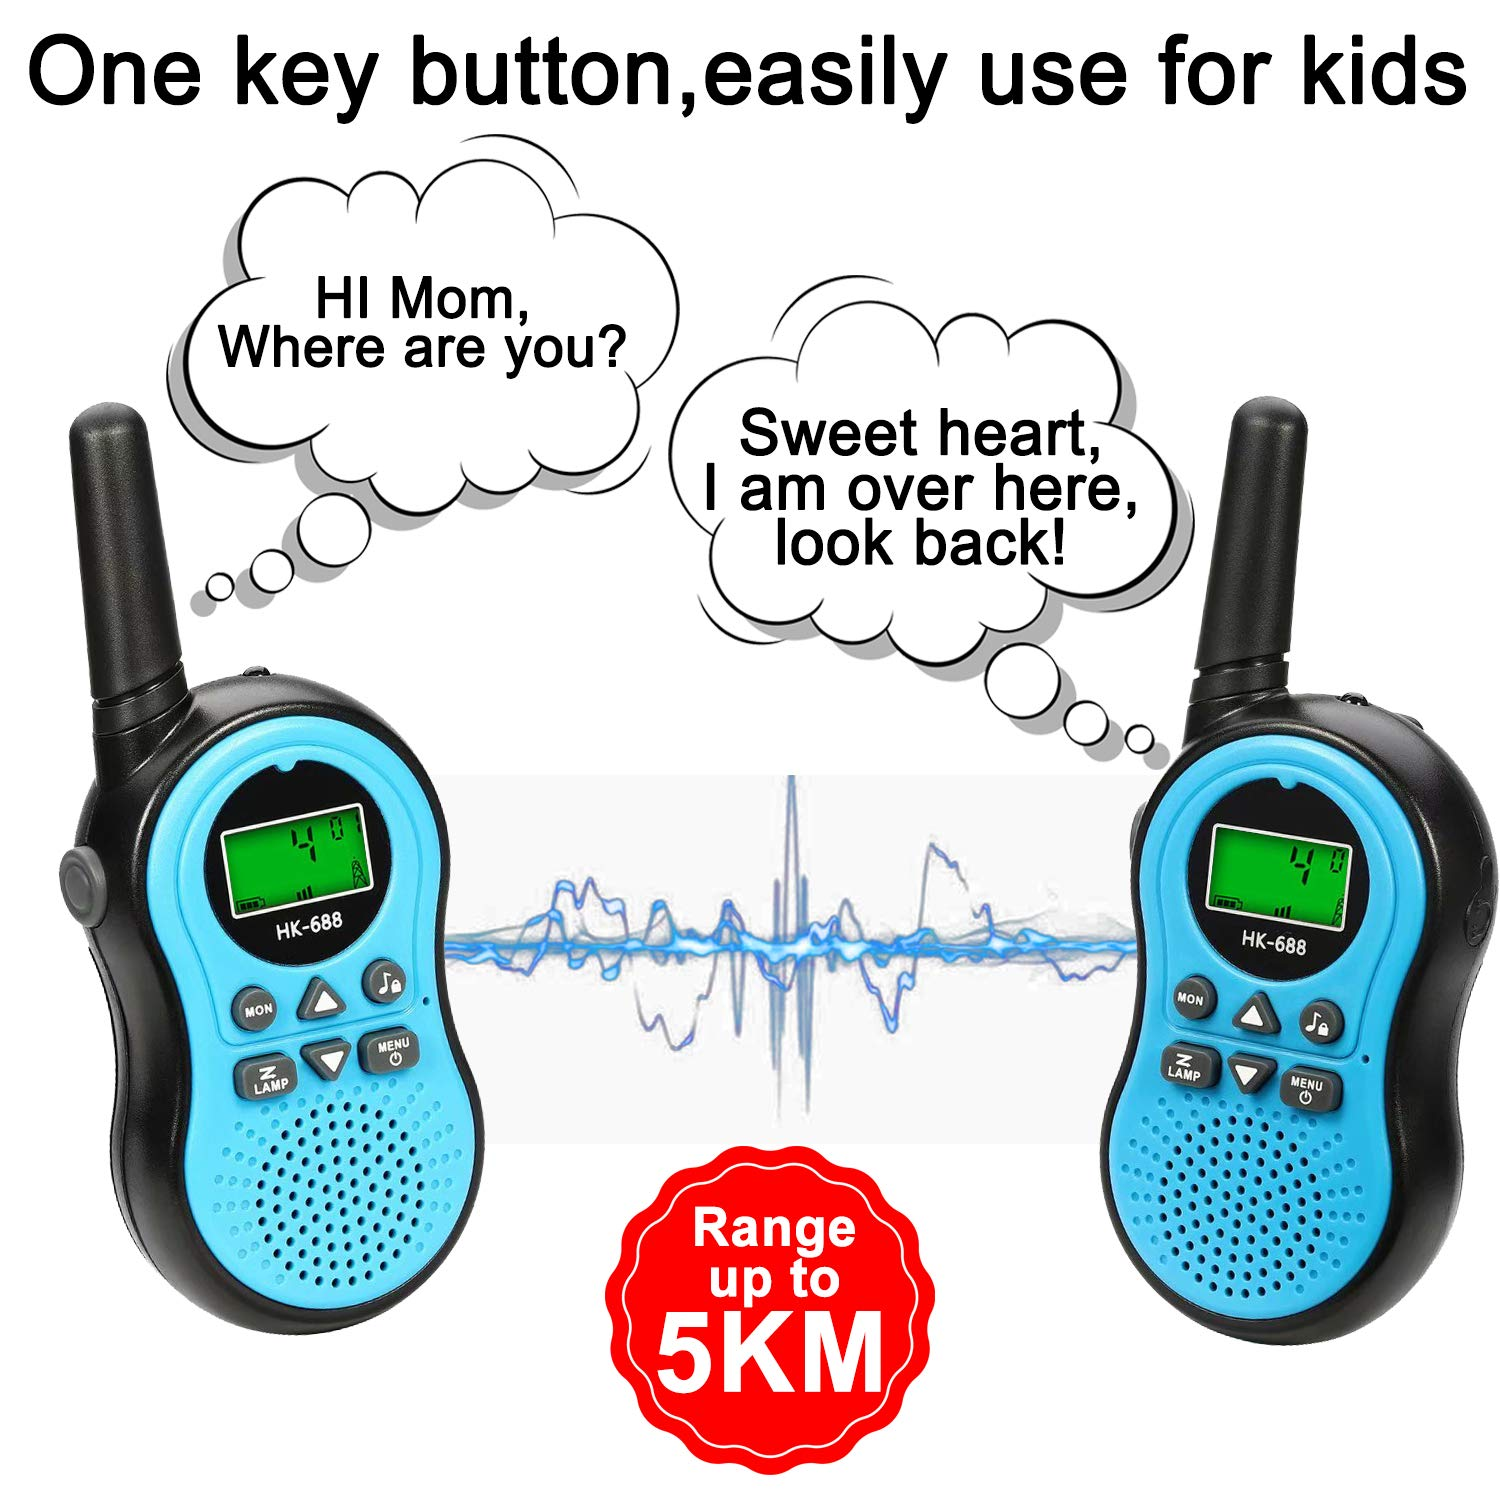 ZOFUNNY 4 Pack Kids Walkie Talkies for Boys Girls Rechargeable Radios 2 Way Long Range 22 Channel Walkie Talkies with Flashlight FRS Radio Toys Outdoor Adventure Camping Hiking Holiday Birthday Gifts by ZOFUNNY (Image #2)